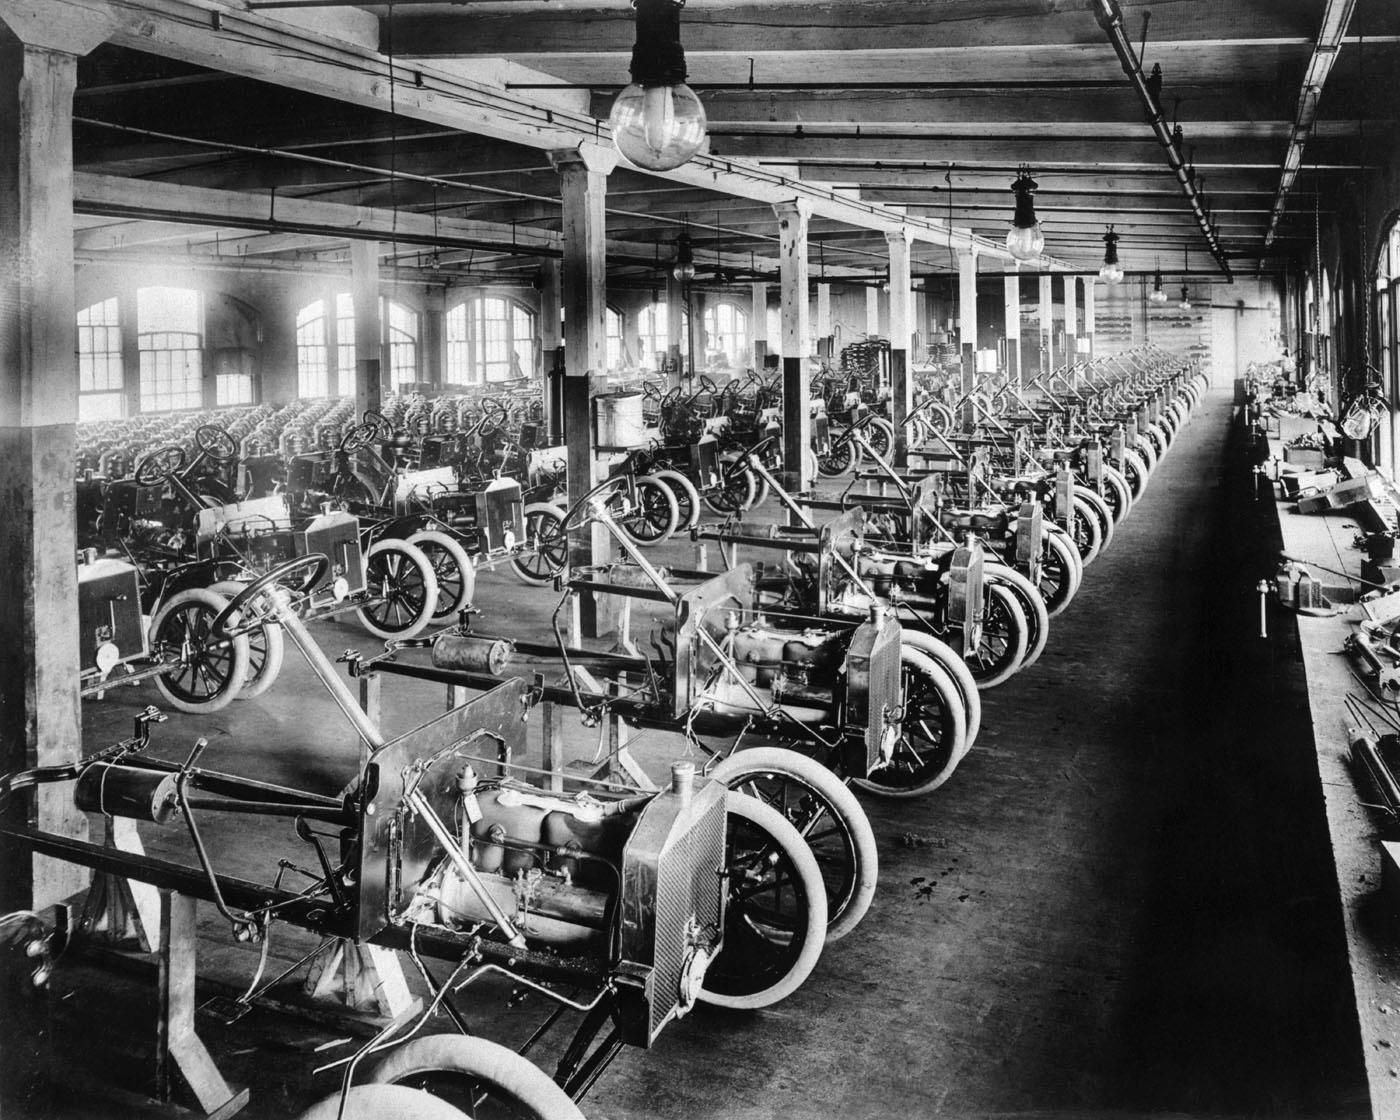 Ford Motor Company Piquette Plant